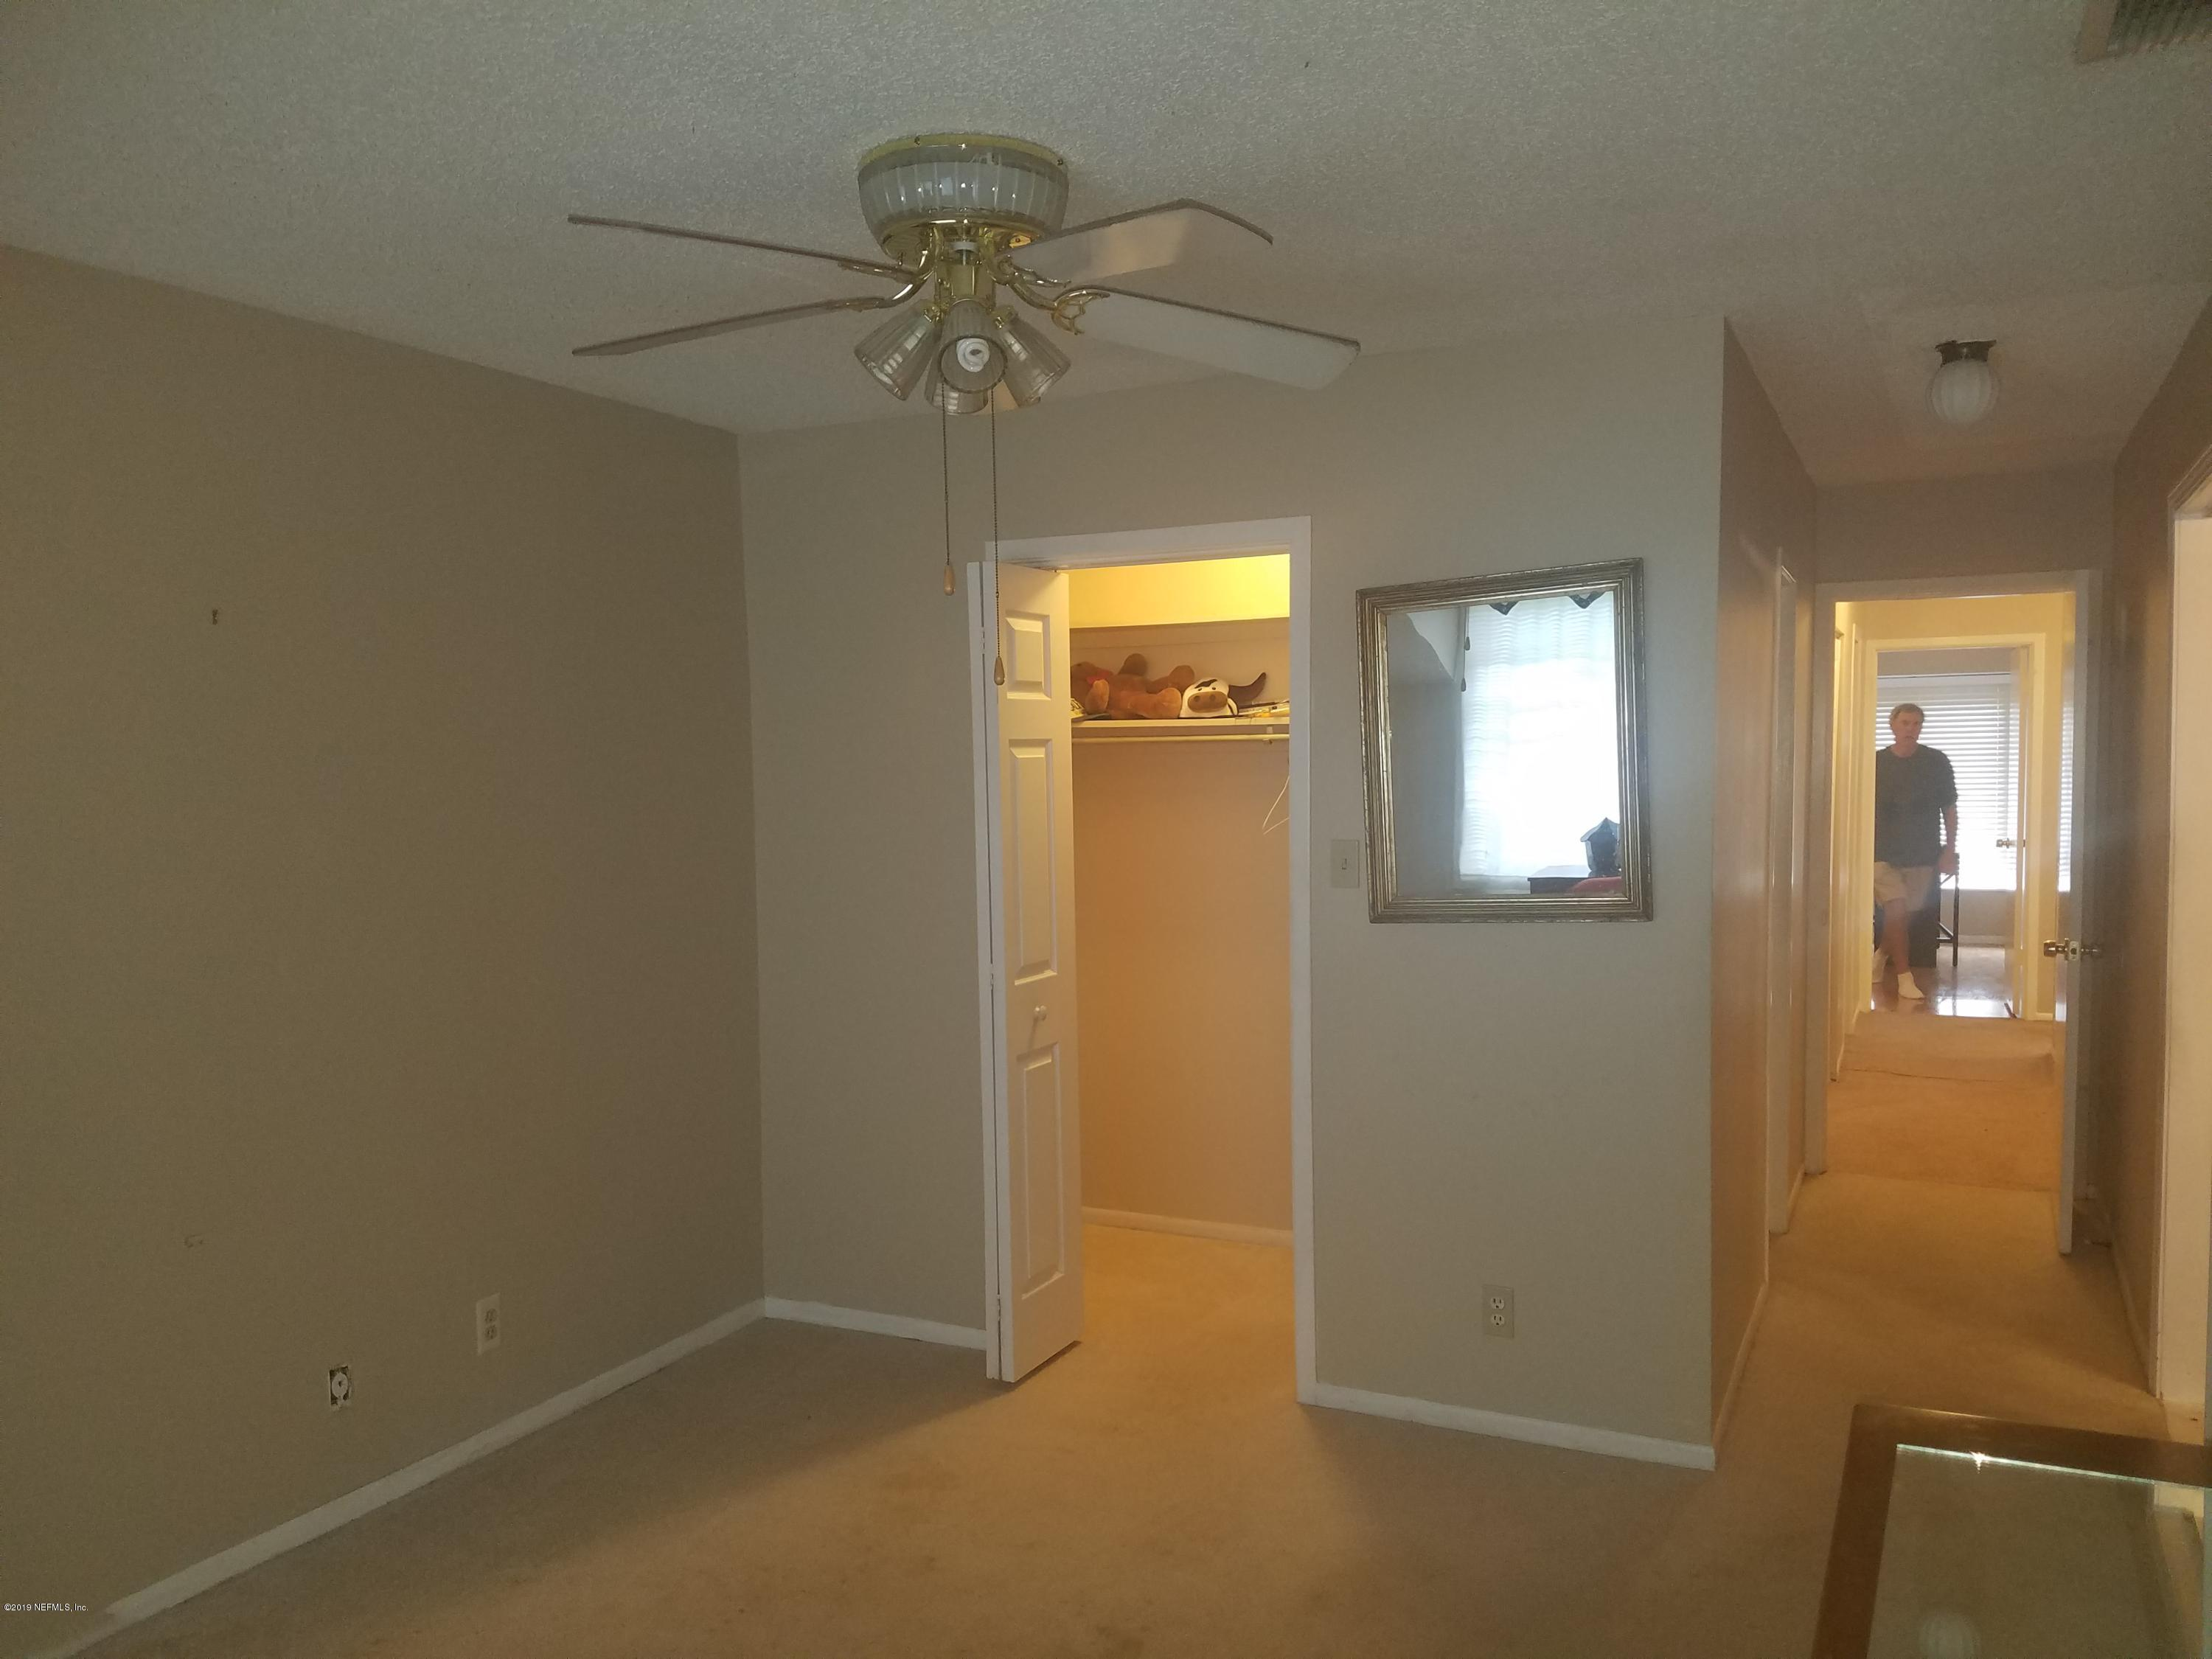 6217 LAKE LUGANO, JACKSONVILLE, FLORIDA 32256, 3 Bedrooms Bedrooms, ,2 BathroomsBathrooms,Condo,For sale,LAKE LUGANO,1017901